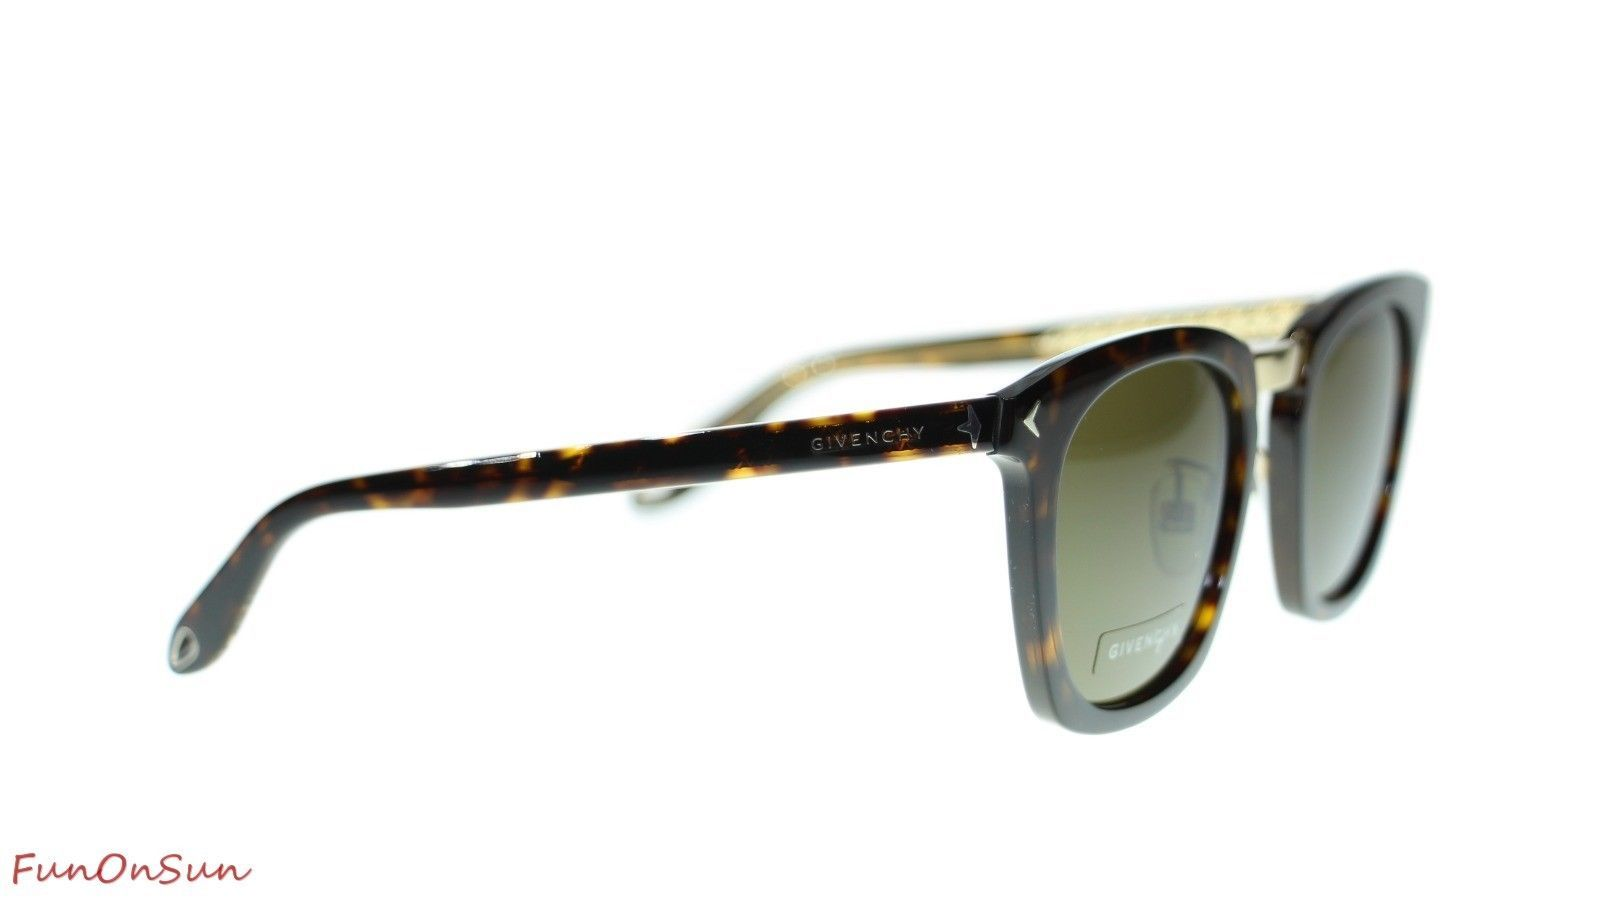 Givenchy Women's Sunglasses GV7065 WR9 Havana Brown/Brown Lens Square Authentic